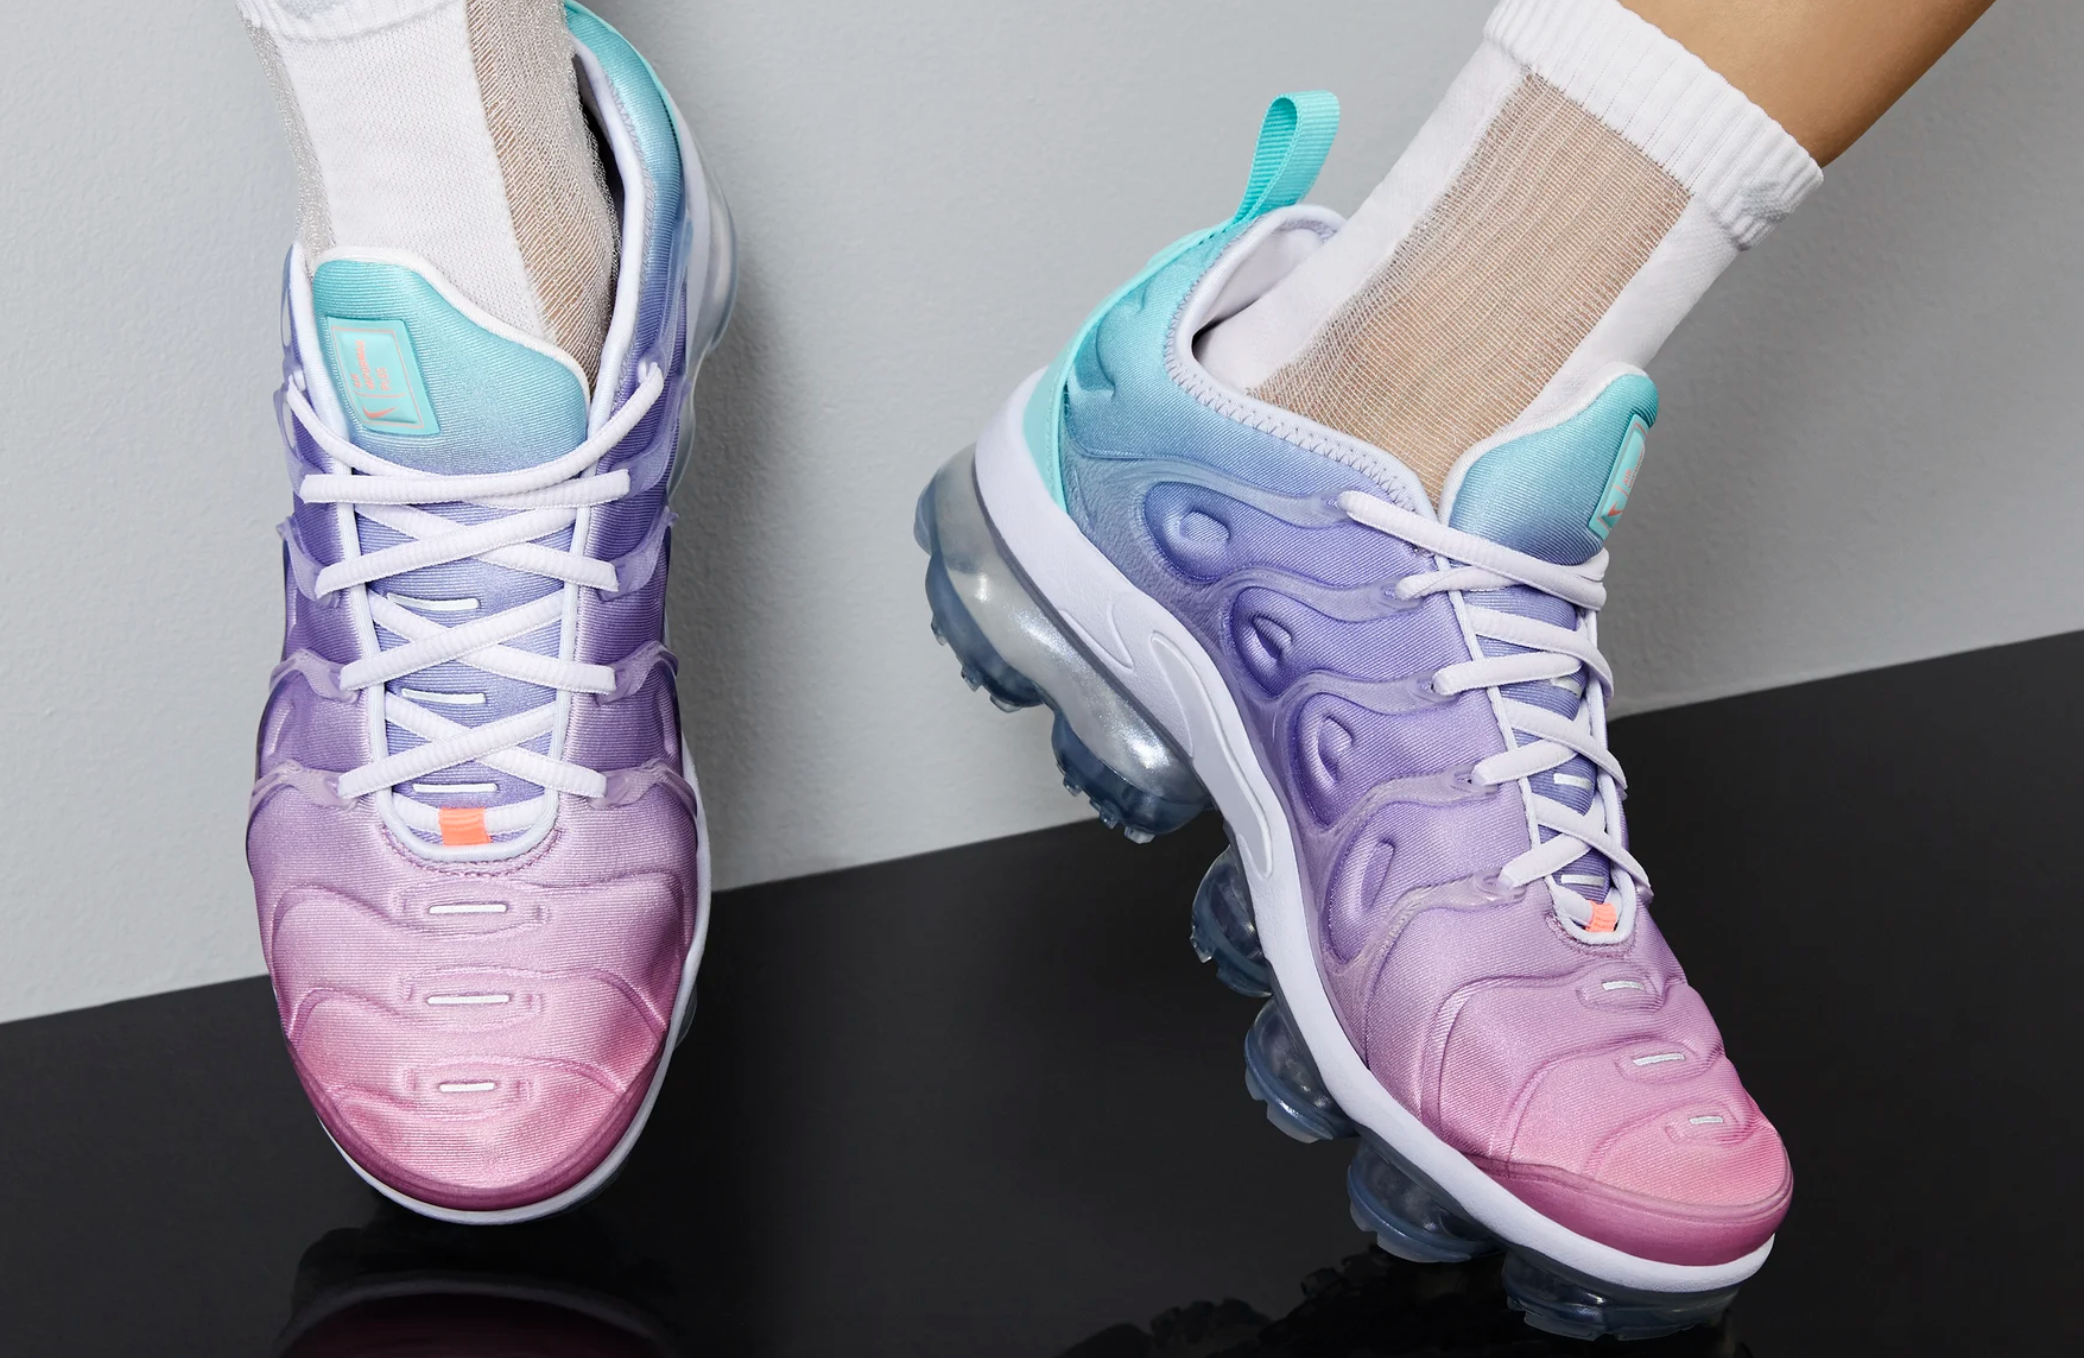 The shoes on feet in a pink, purple, blue ombre